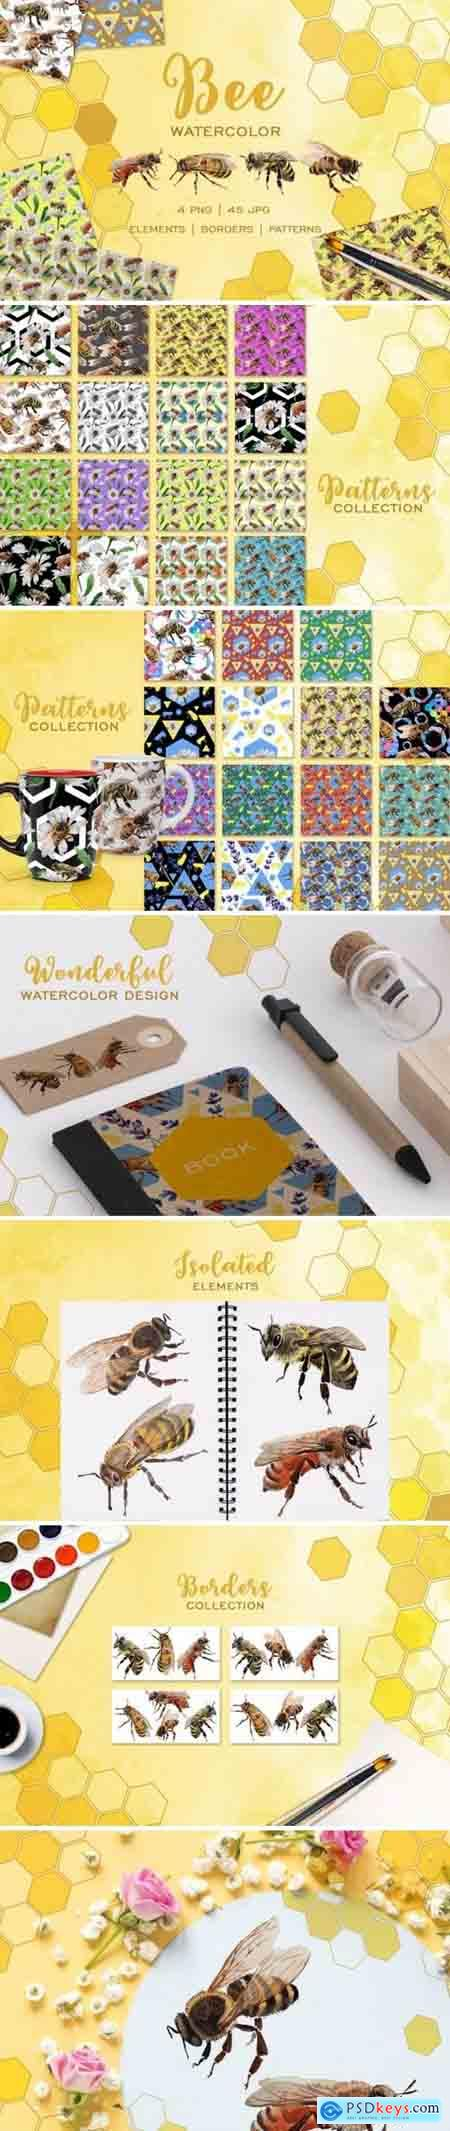 Creativemarket Bee Watercolor png